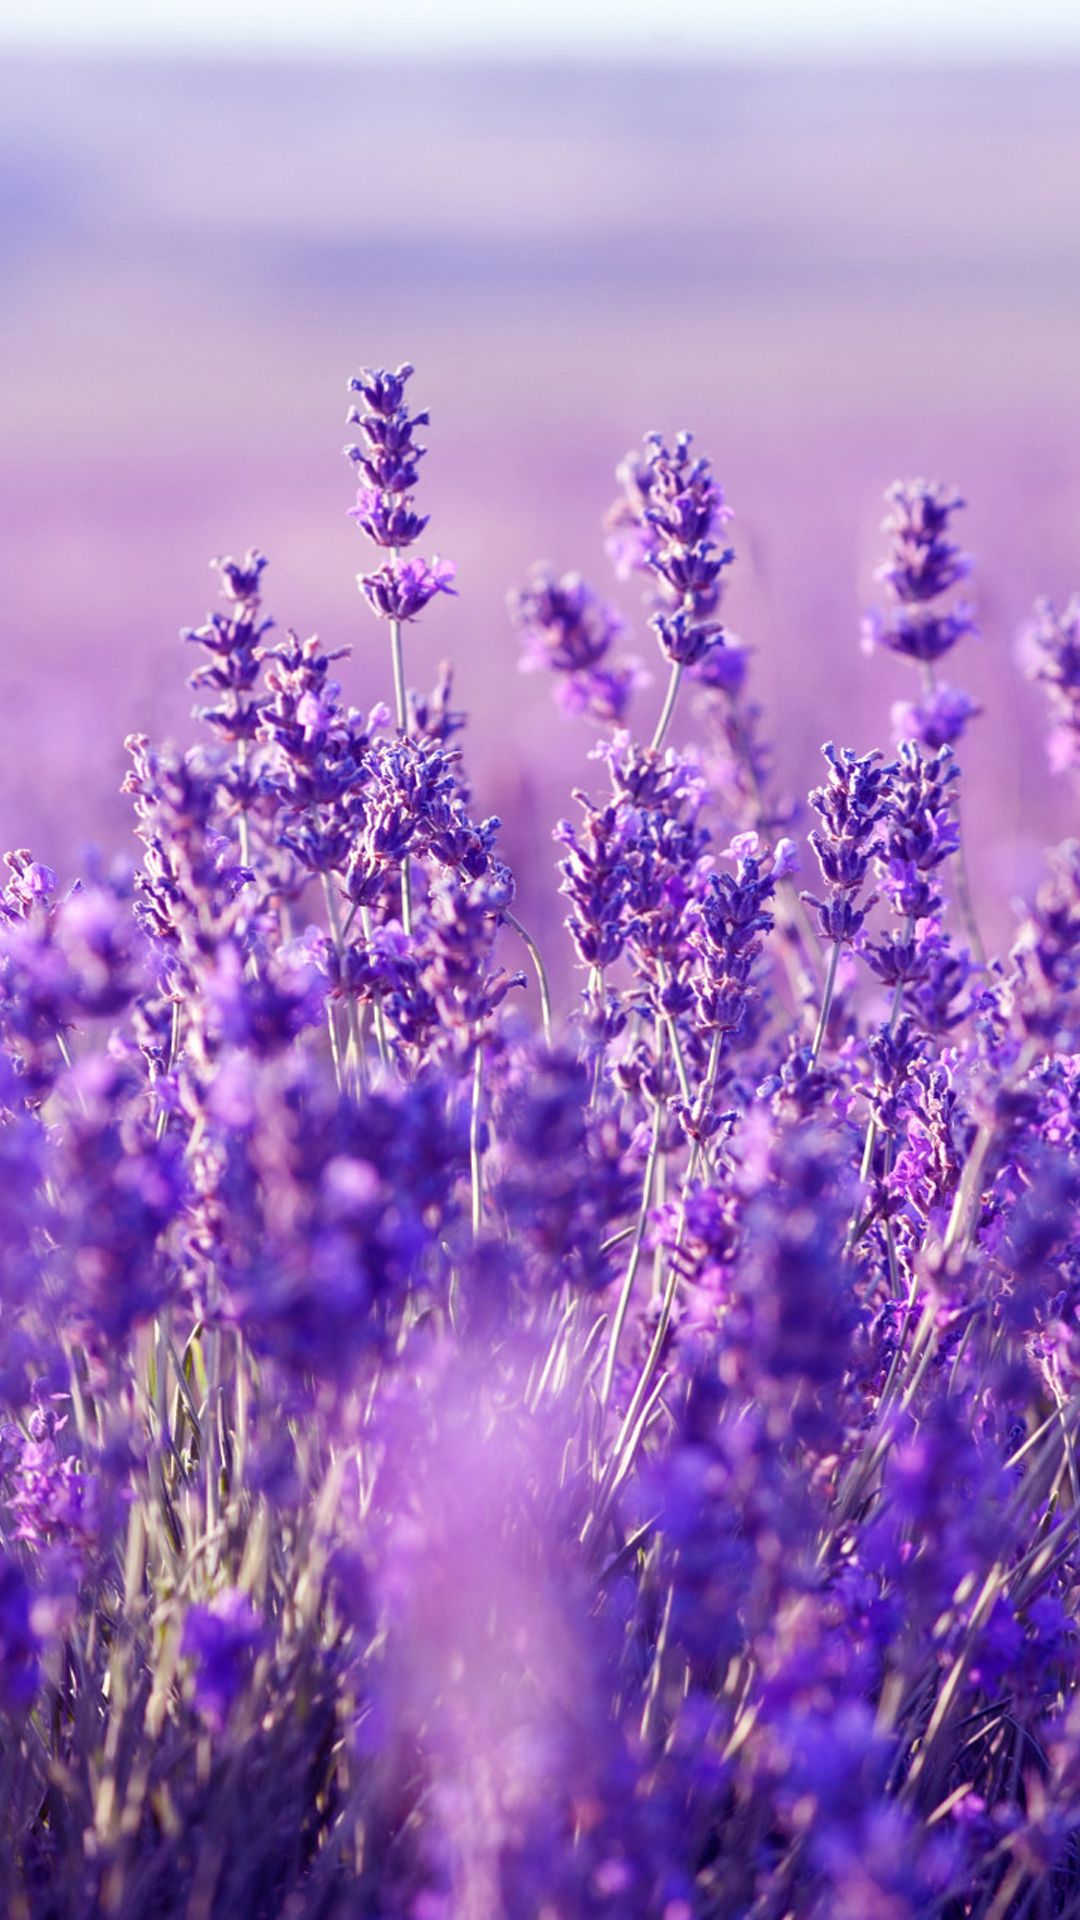 Beautiful Lavender Wallpaper  HD Lavender Mobile Background   http         Lavender Wallpaper  HD Lavender Mobile Background    http   helpyourselfimages com portfolio beautiful lavender wallpaper hd  lavender mobile background